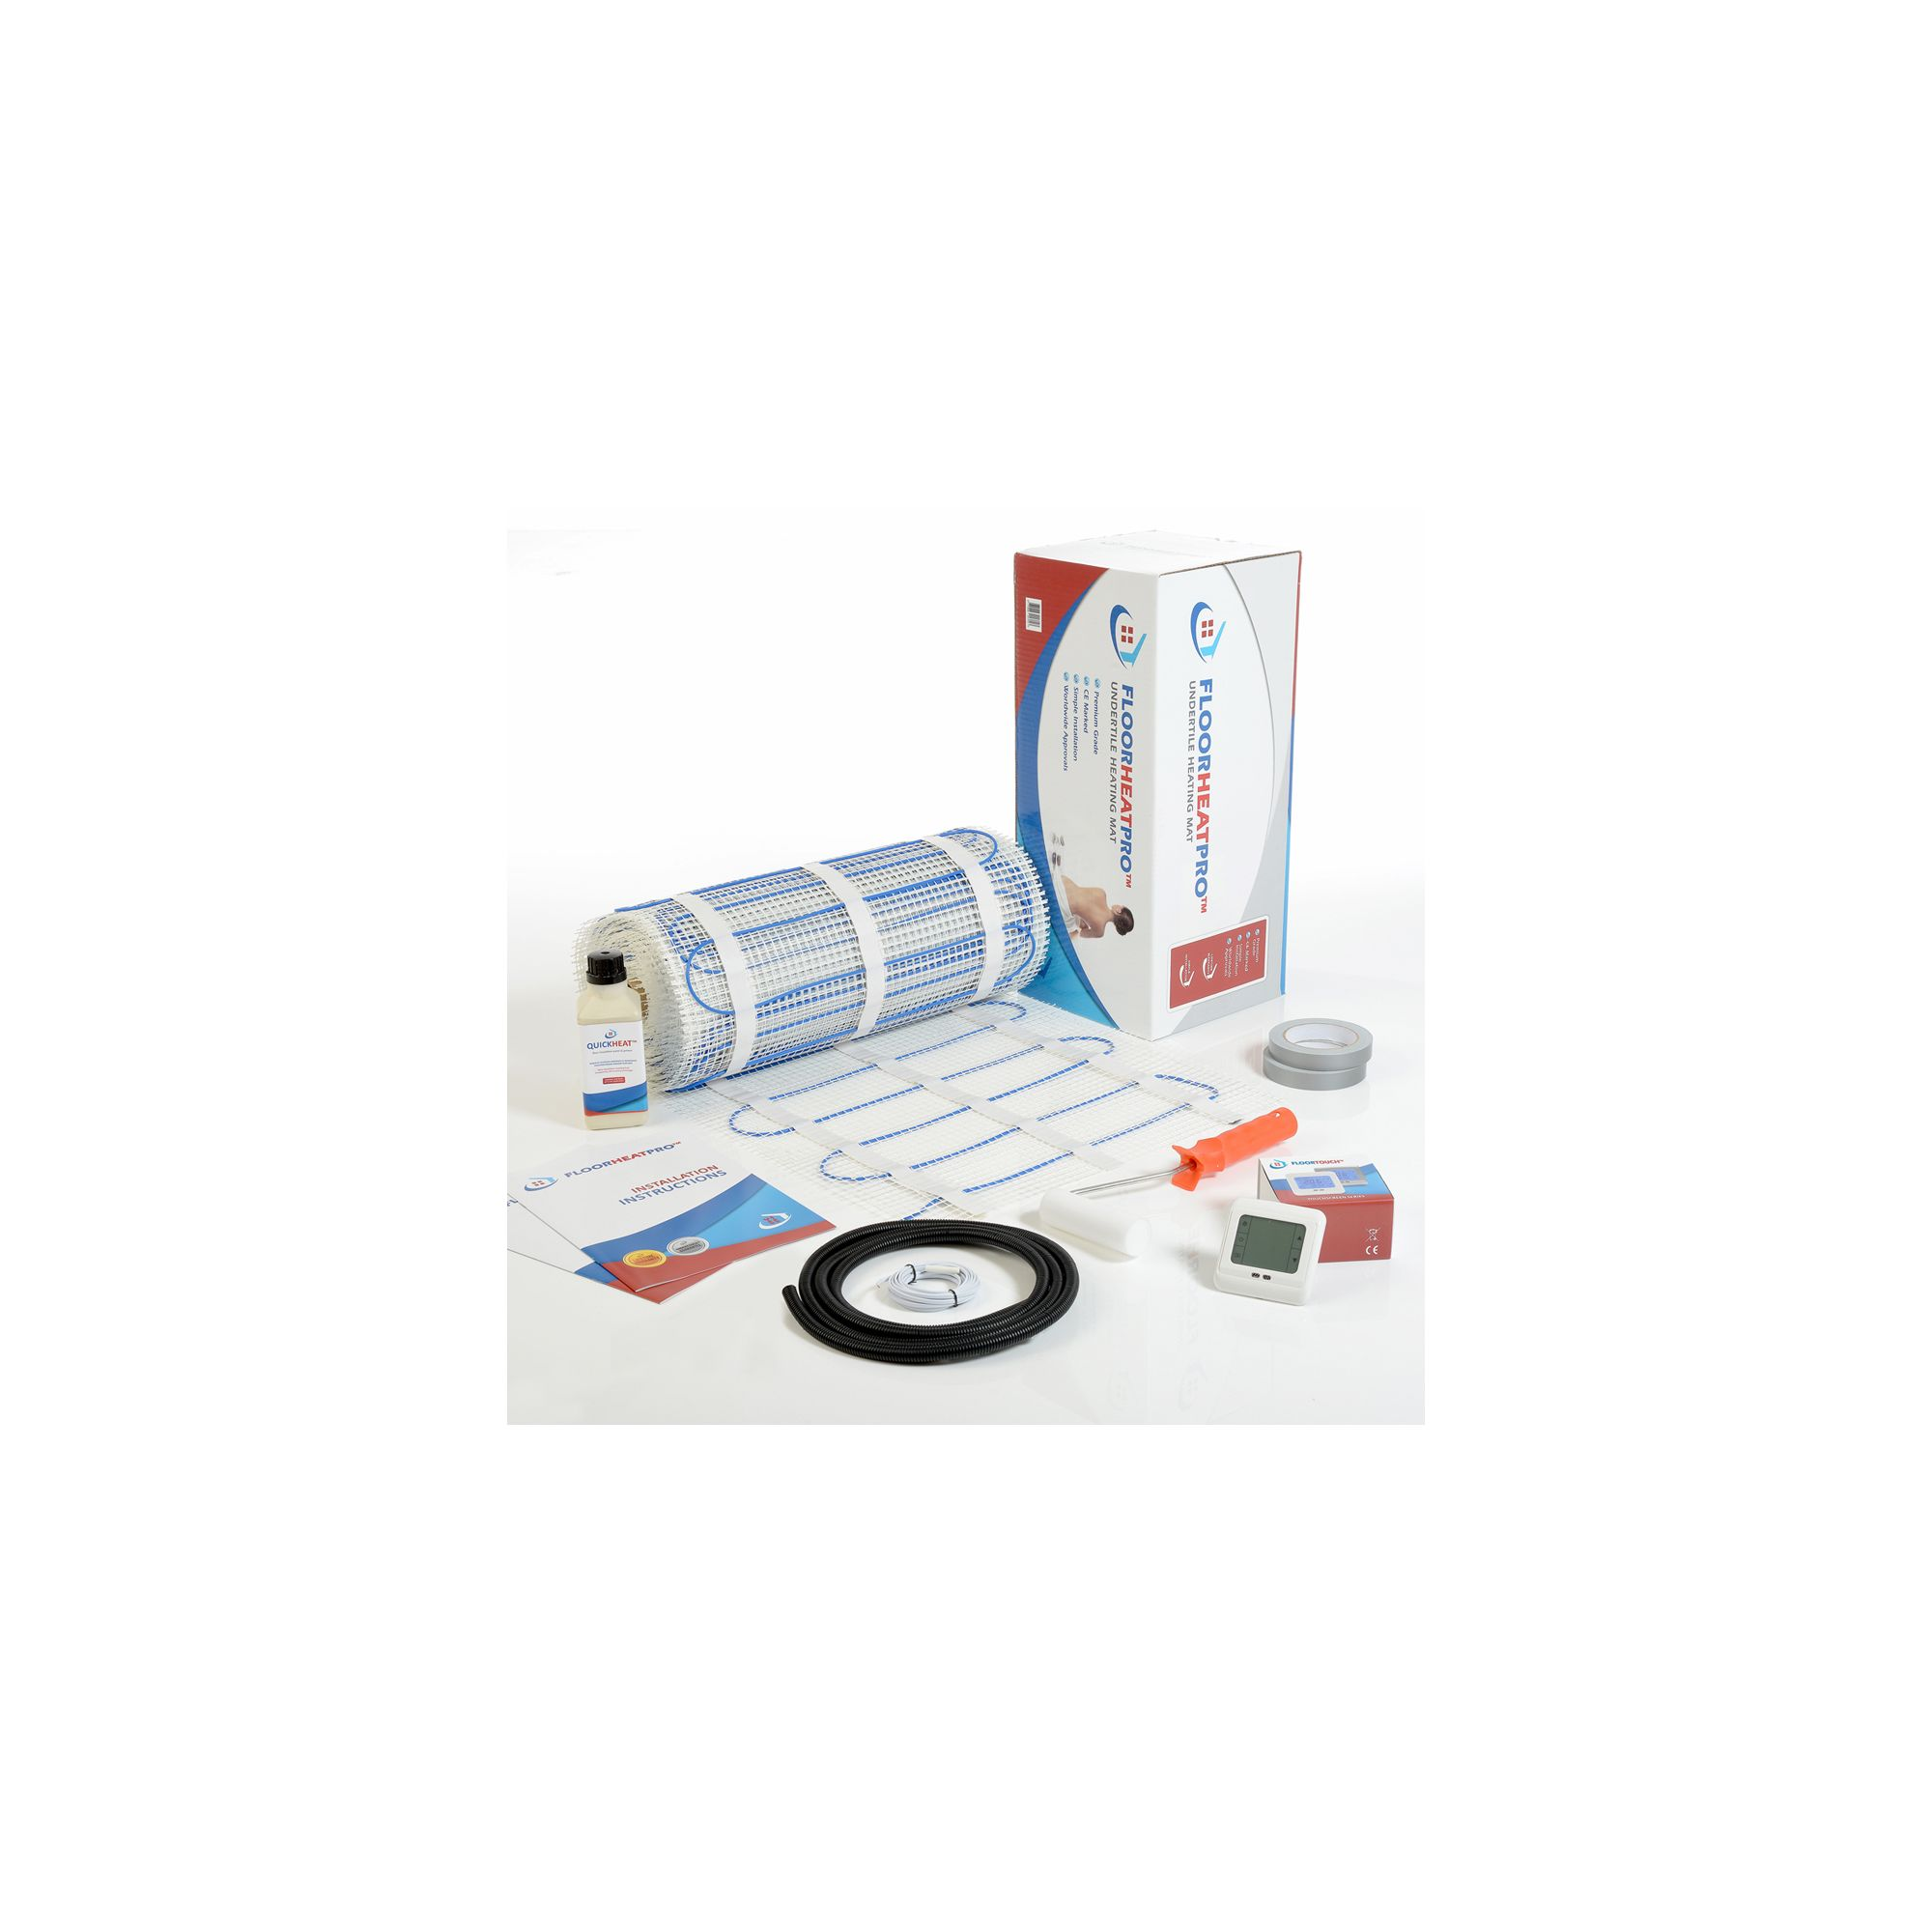 11.0m2 - Underfloor Electric Heating Kit 200w/m2 - Tiles at Tescos Direct